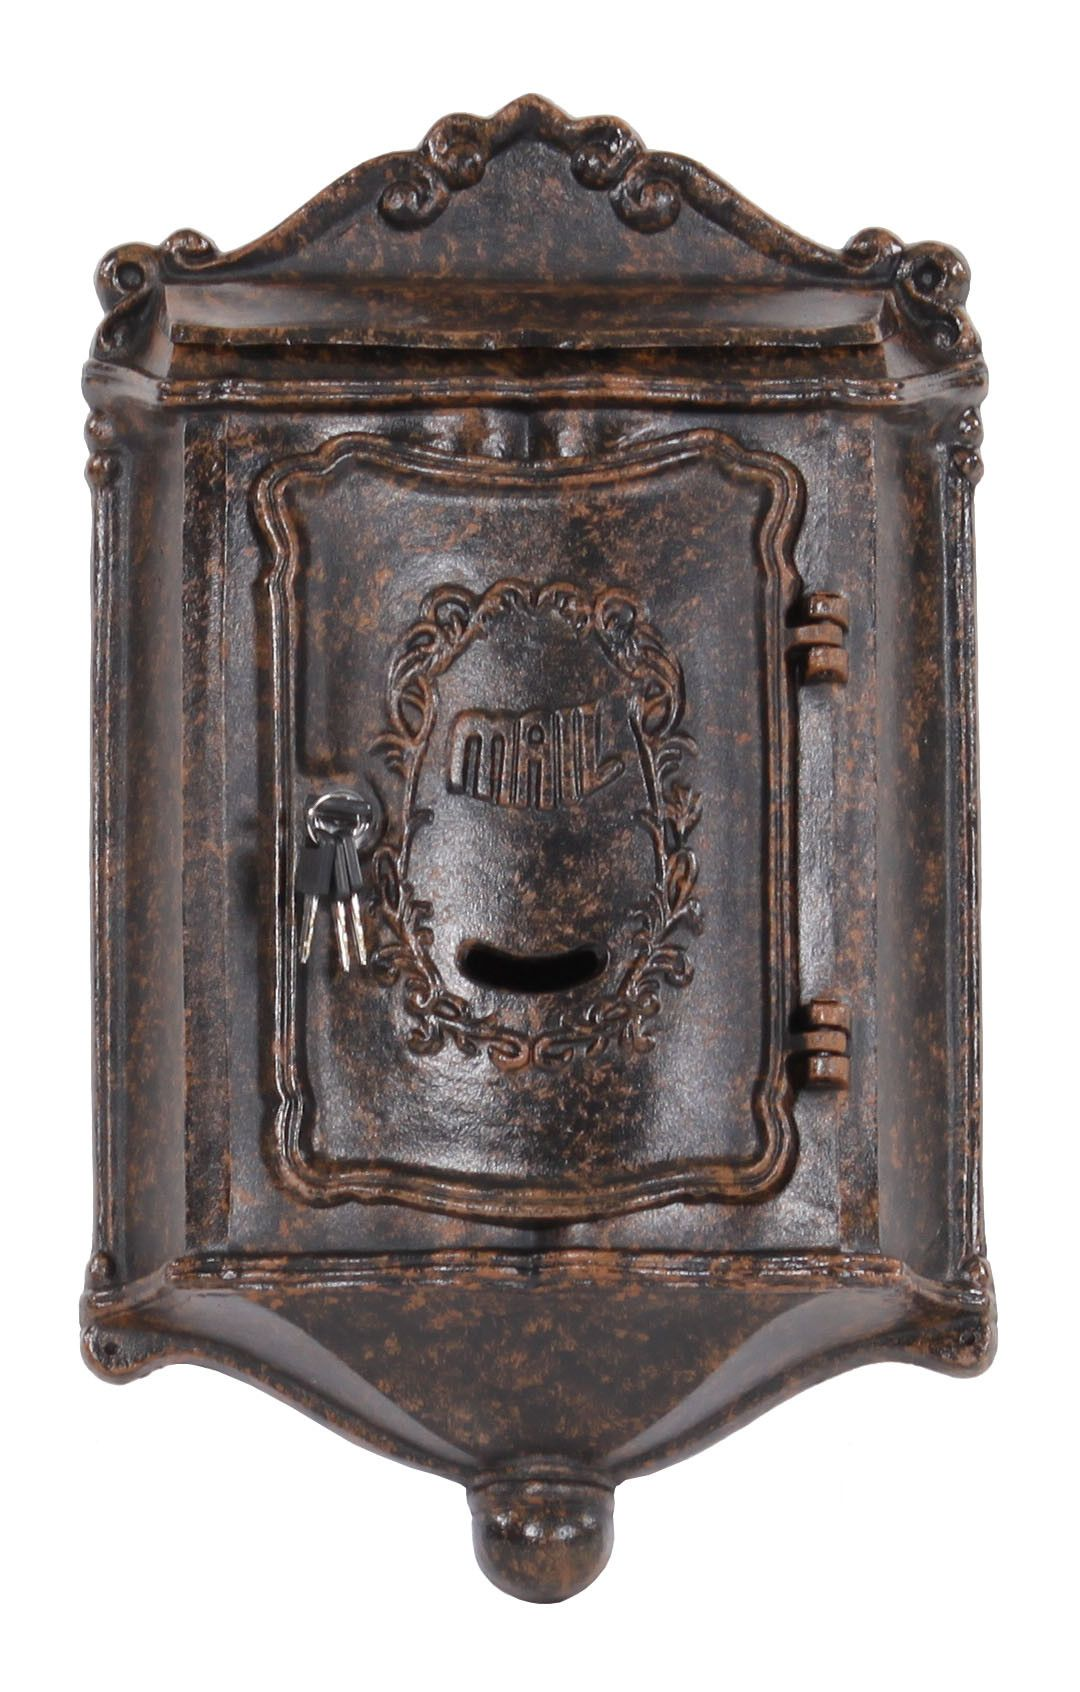 Colonial Locking Wall Mounted Mailbox Vintage Mailbox Wall Mount Mailbox Antique Mailbox